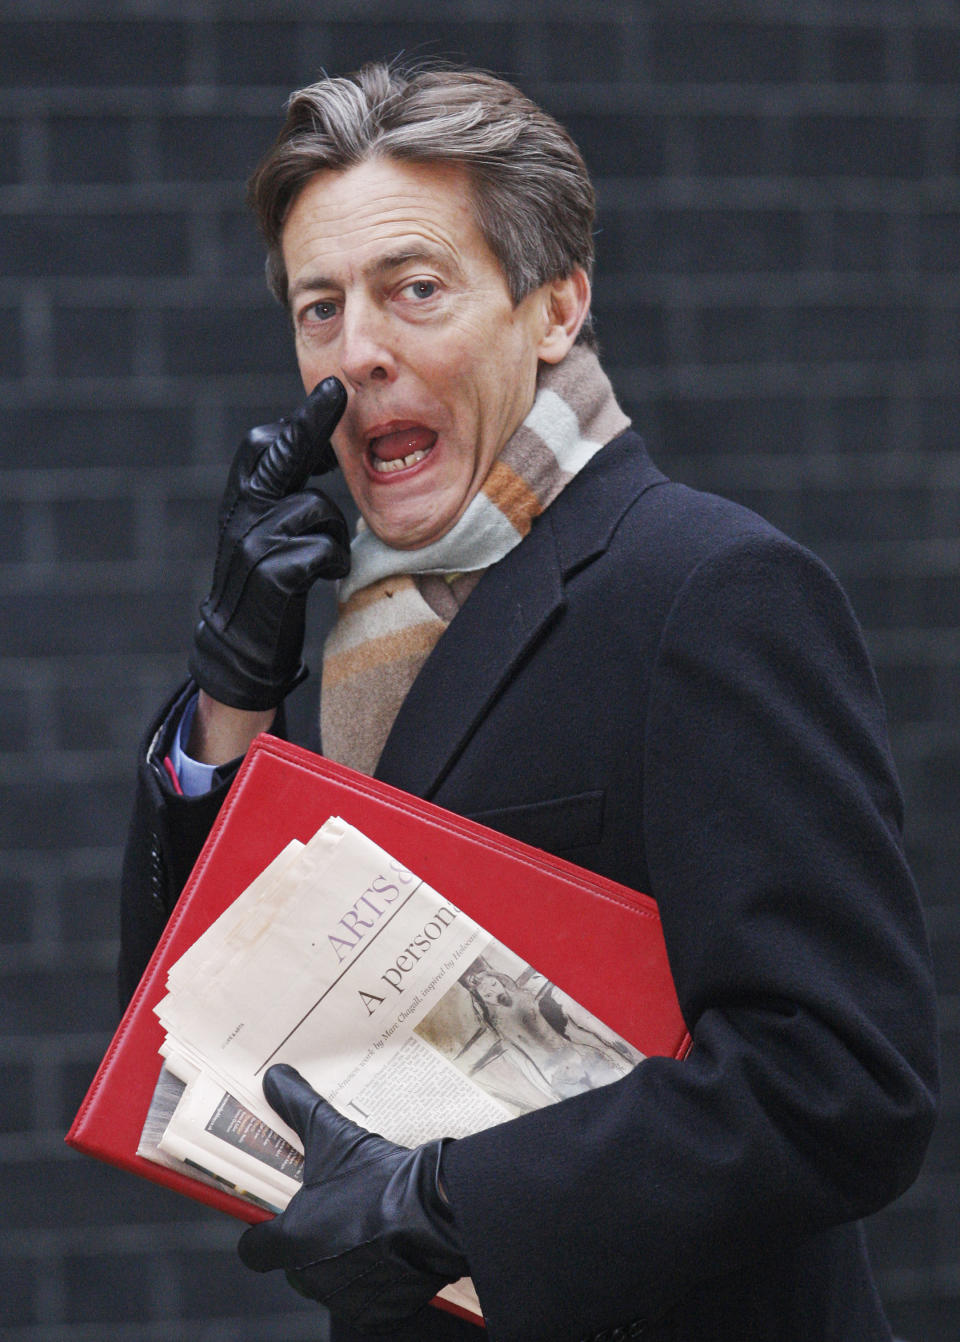 Britain's Culture Secretary Ben Bradshaw gestures as he arrives to attend the weekly Cabinet meeting at 10 Downing Street in central London January 12, 2010.  REUTERS/Luke MacGregor      (BRITAIN - Tags: POLITICS ENTERTAINMENT)